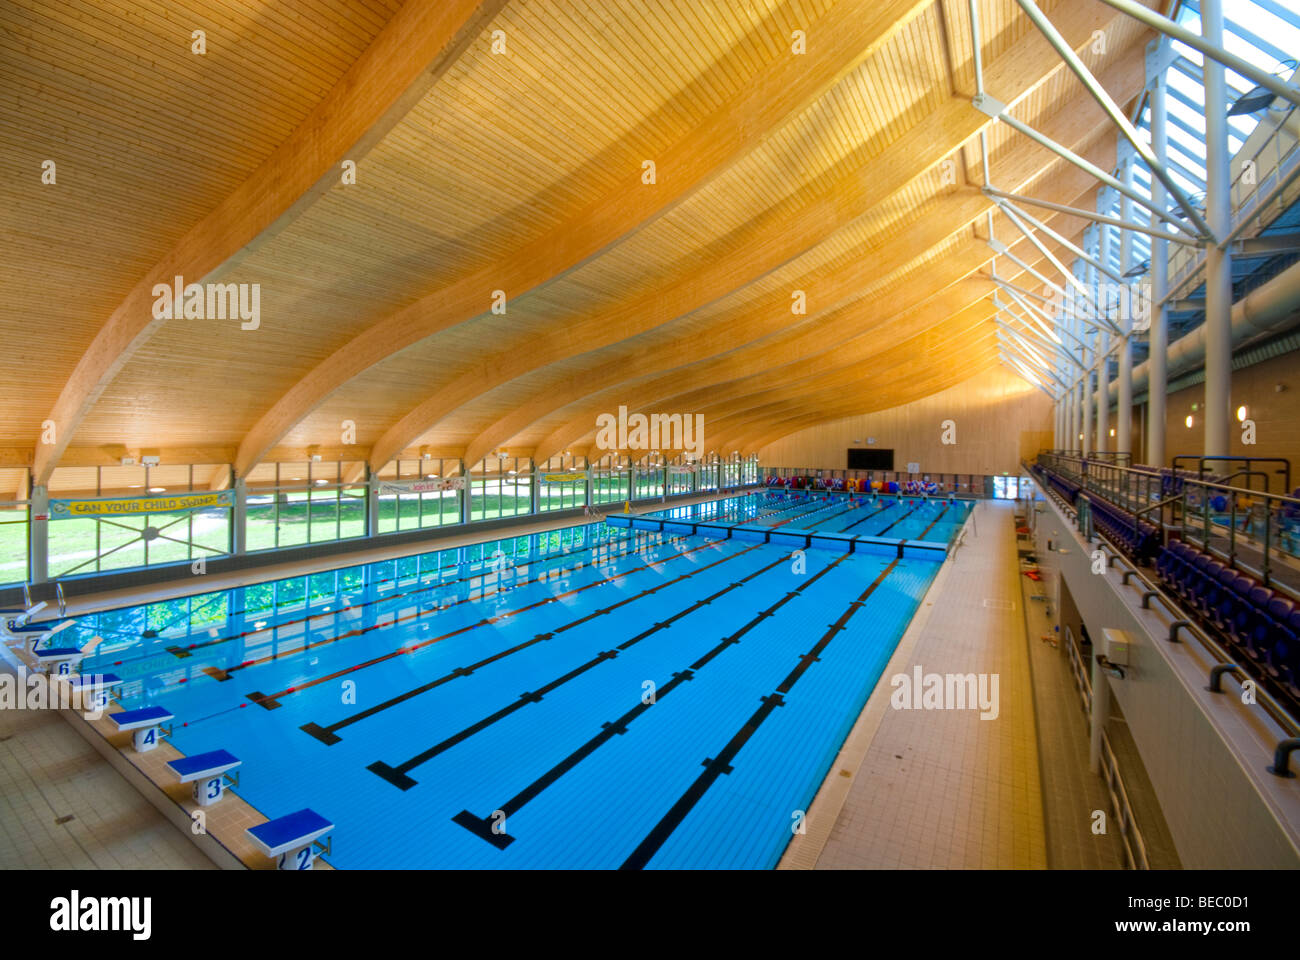 Olympic swimming pool empty stock photos olympic swimming pool empty stock images alamy for Olympic swimming pool pictures